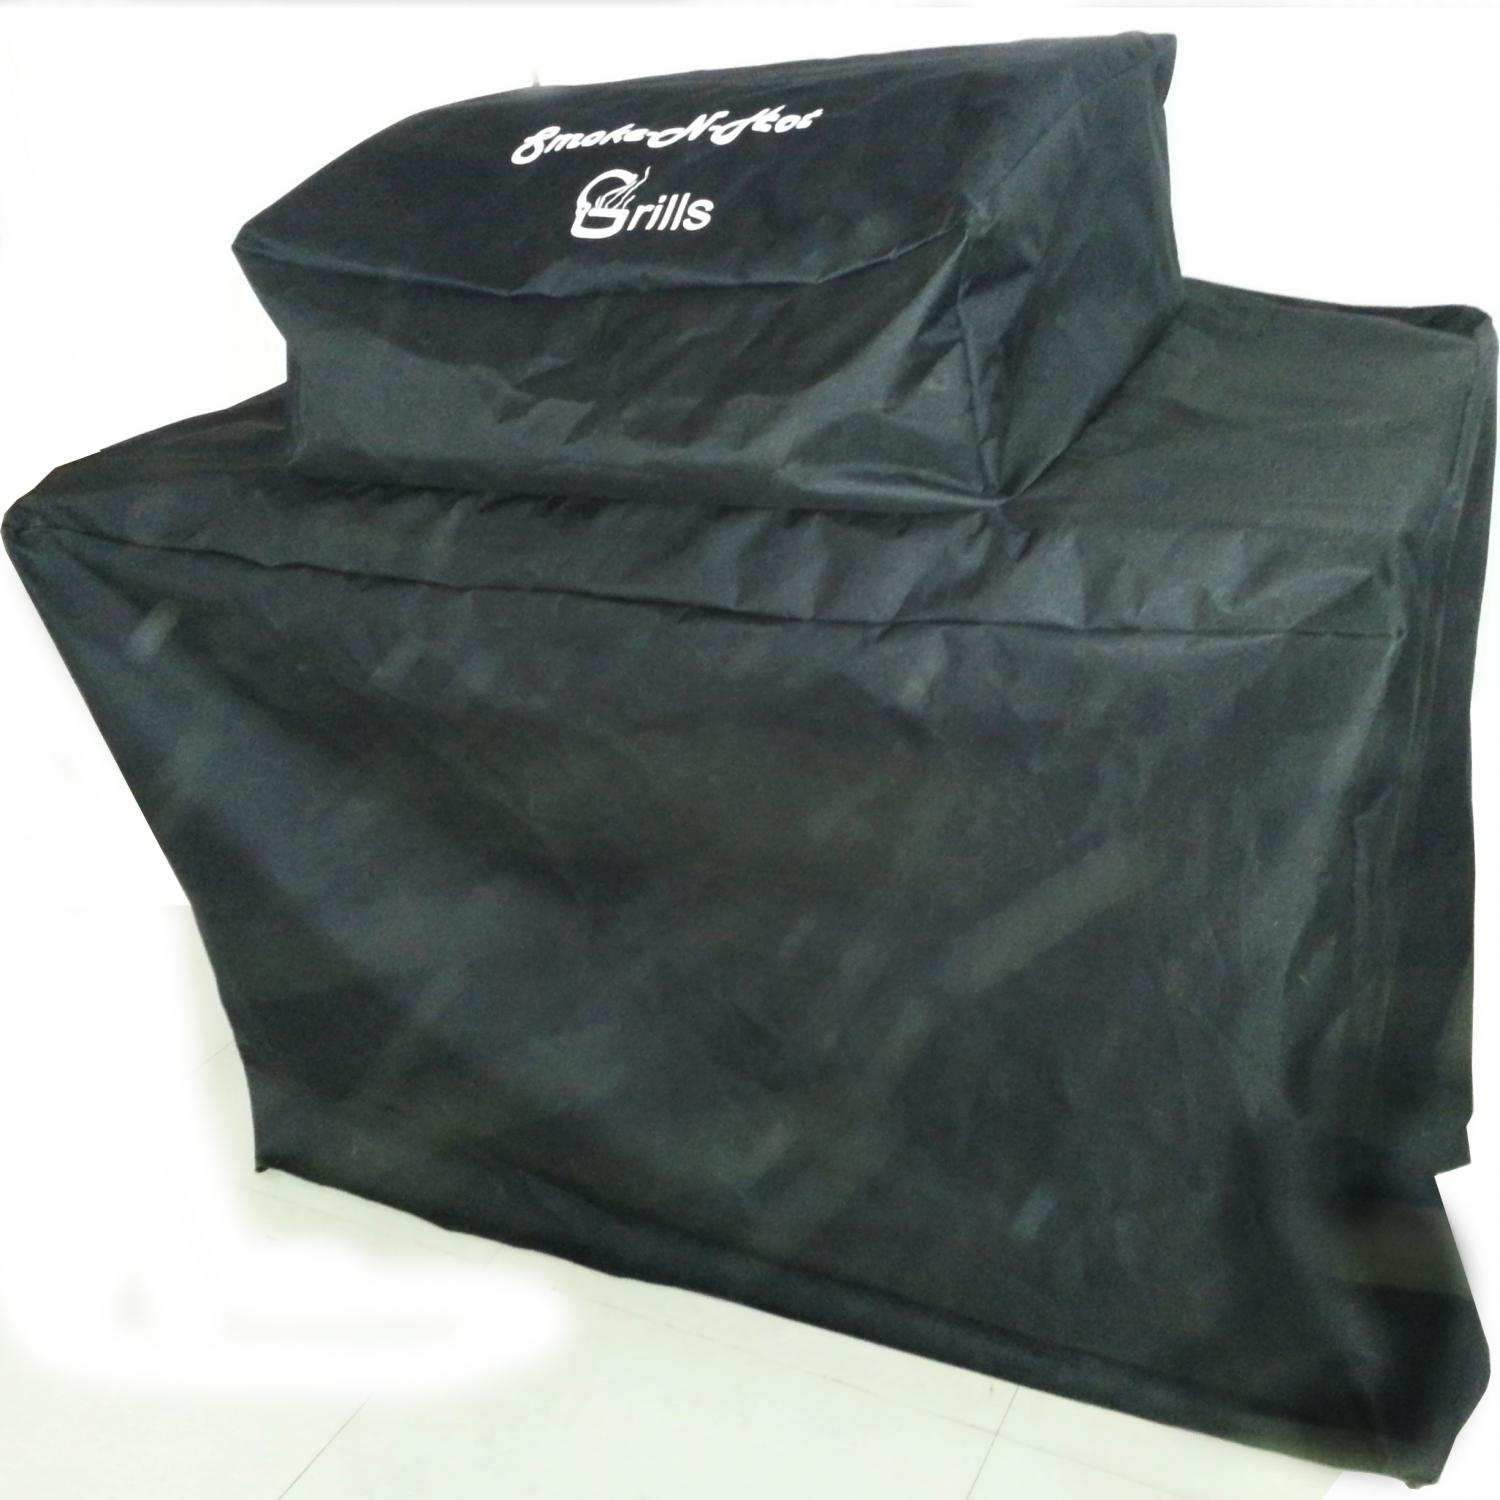 Smoke-N-Hot Supreme 32-Inch Pellet Grill Polyester Water Proof Grill Cover SNH-COVER-SUPREME 2902320